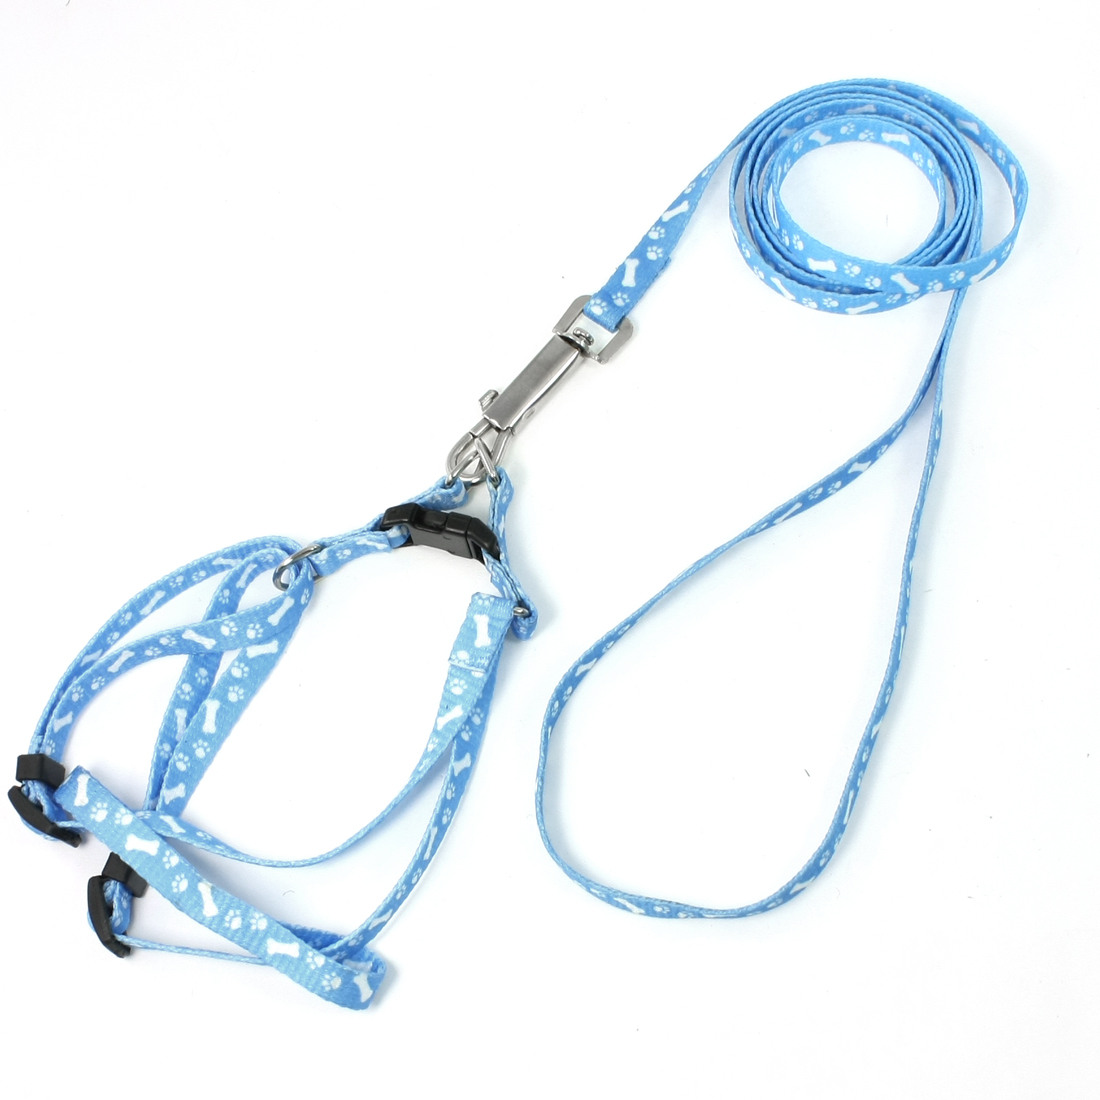 "Blue White Doggie Rope Adjustable Dog Harness Halter Leash Set 46.5"" Long"